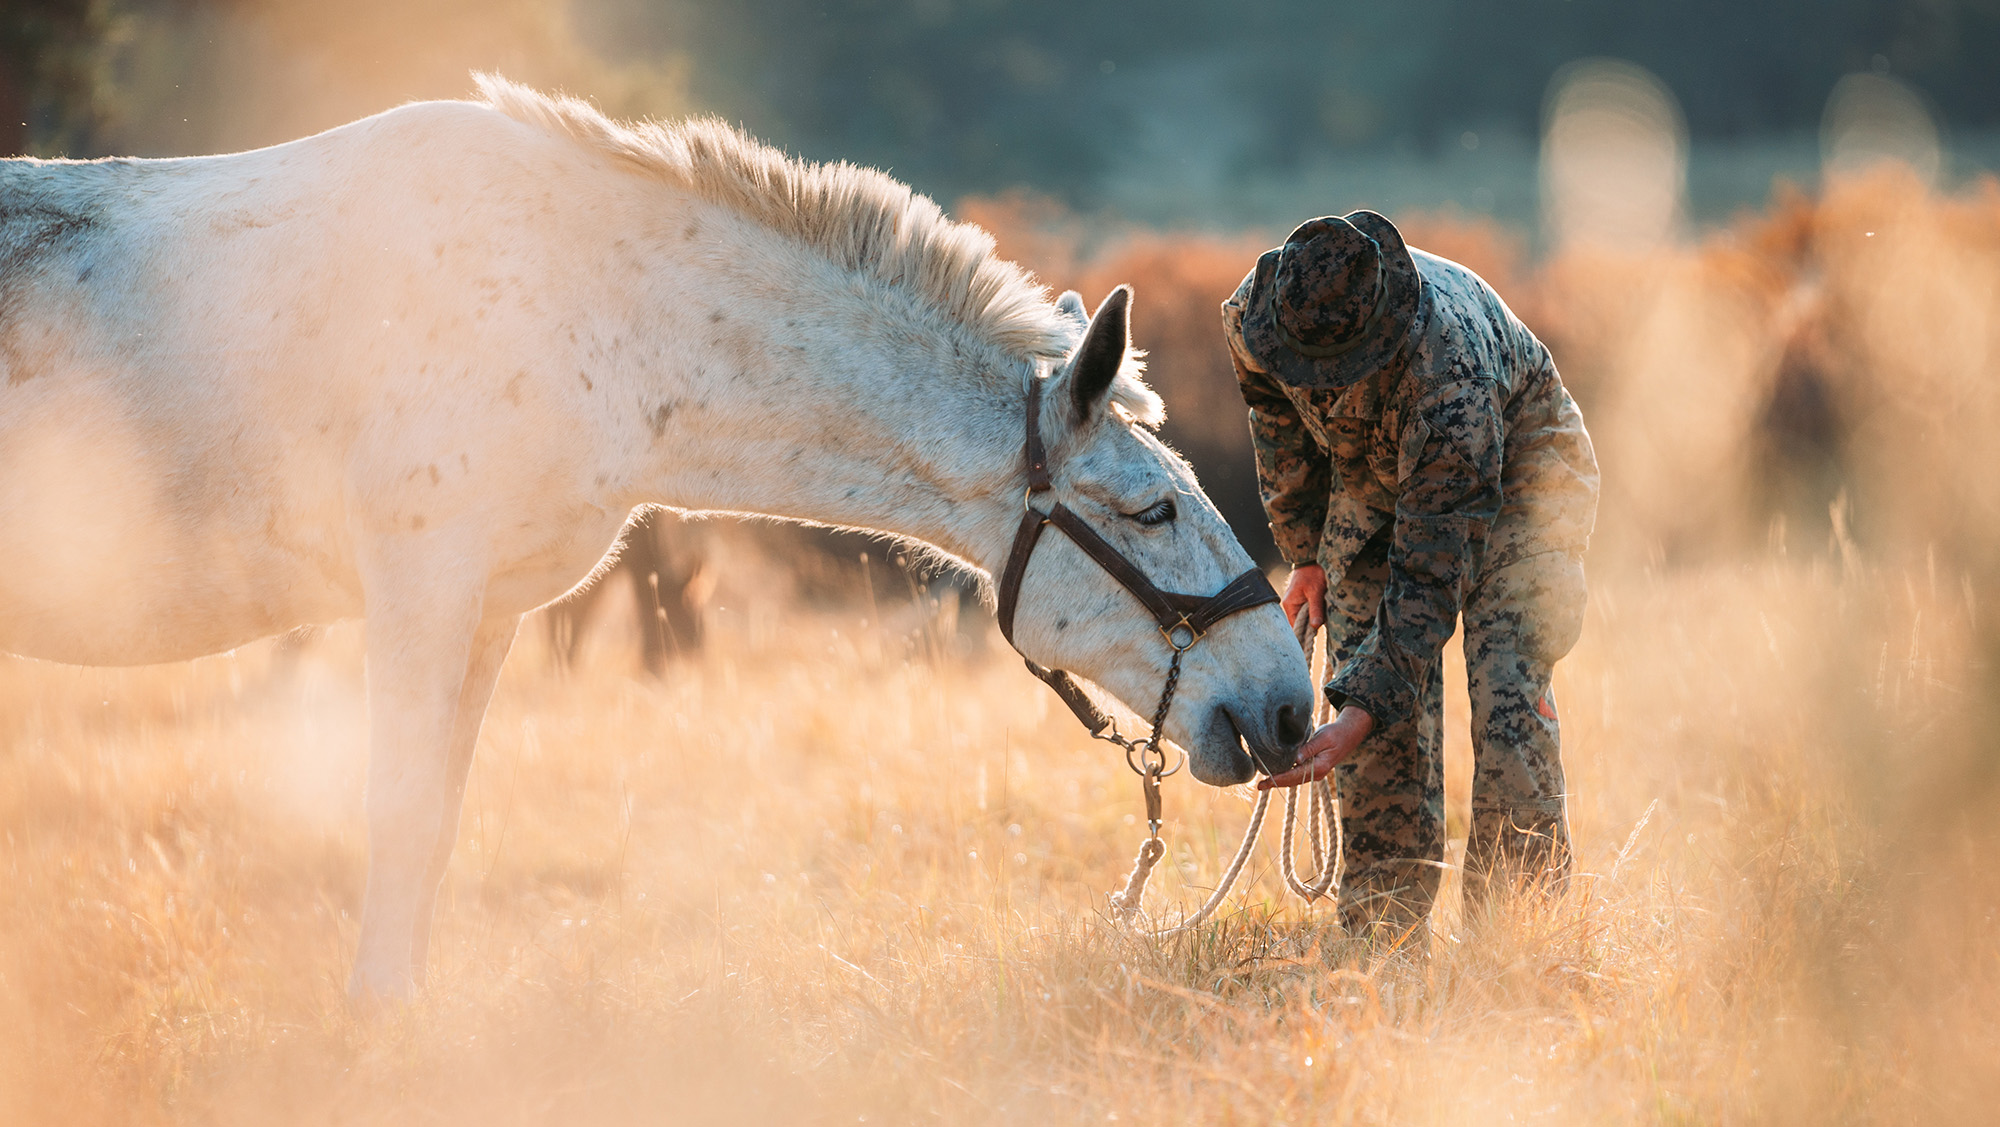 Cpl. William L. Stewart feeds a mule during an animal packer course as a part of Mountain Training Exercise 1-21 at the Marine Corps Mountain Warfare Training Center in Bridgeport, Calif., Oct. 8, 2020. (Cpl. Rachel K. Young-Porter/Marine Corps)